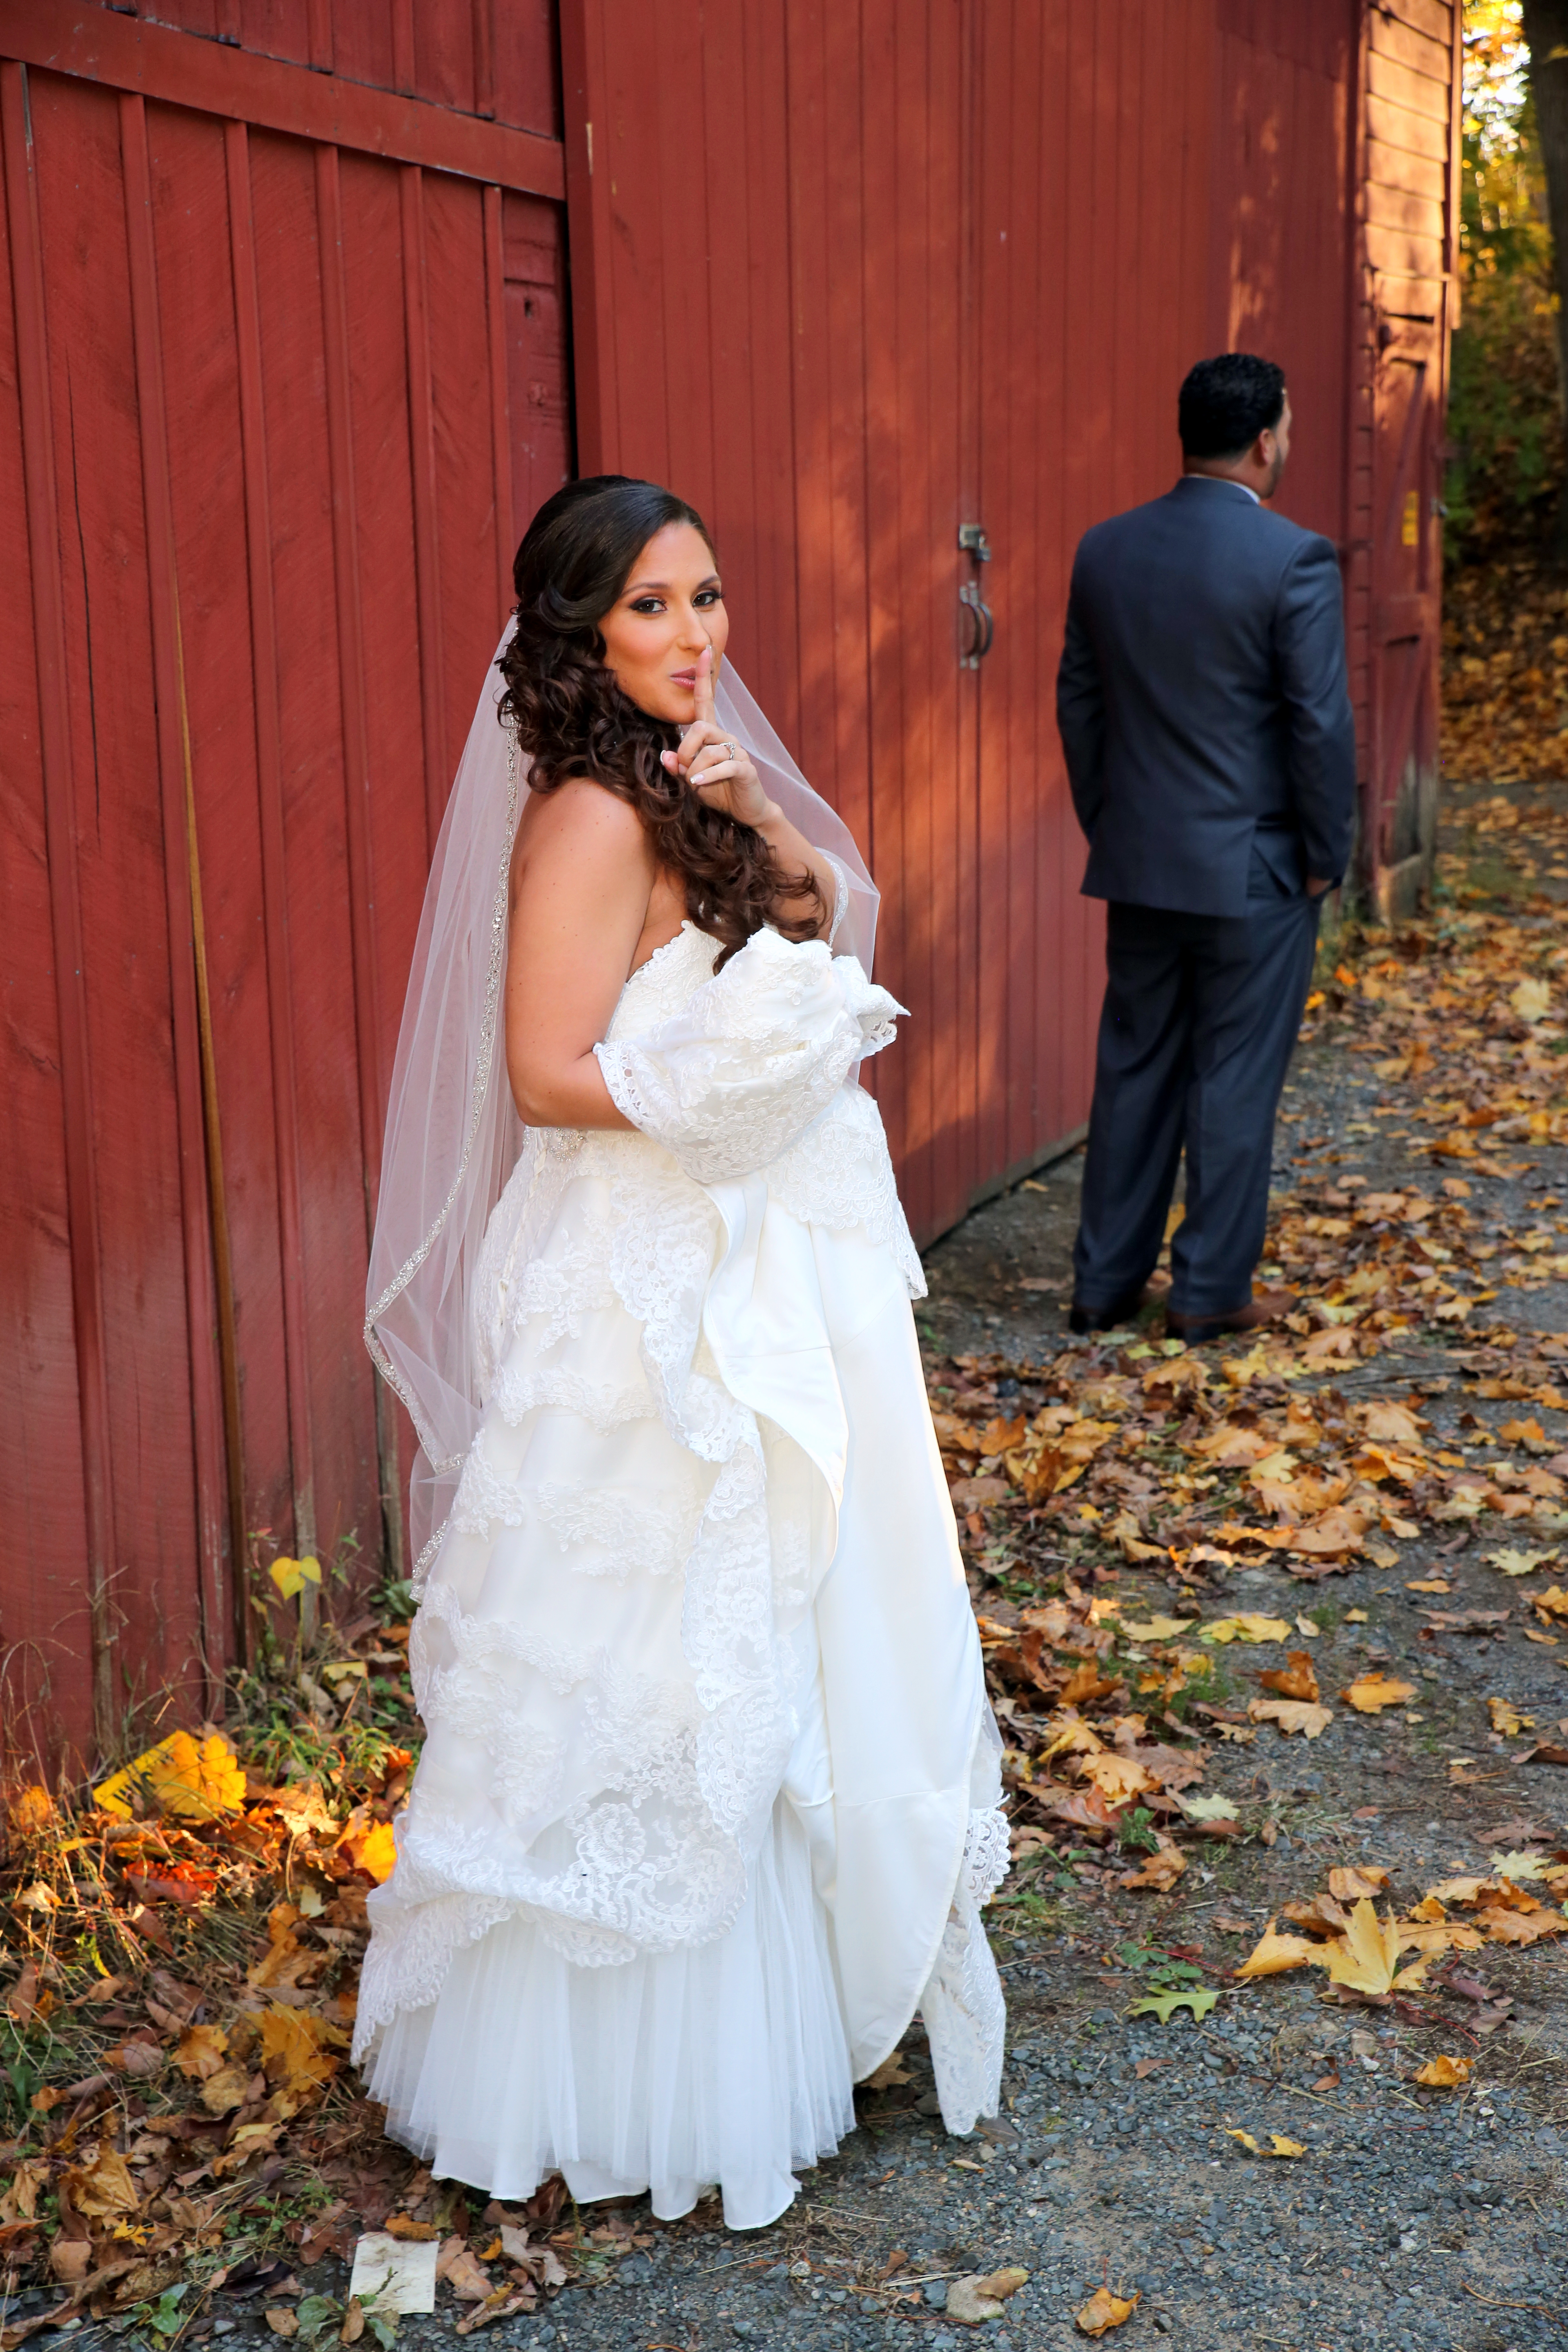 Behind the Scenes of NJ Couple's Pre-Reveal Caught on Camera -Park Savoy in Florham Park, NJ.